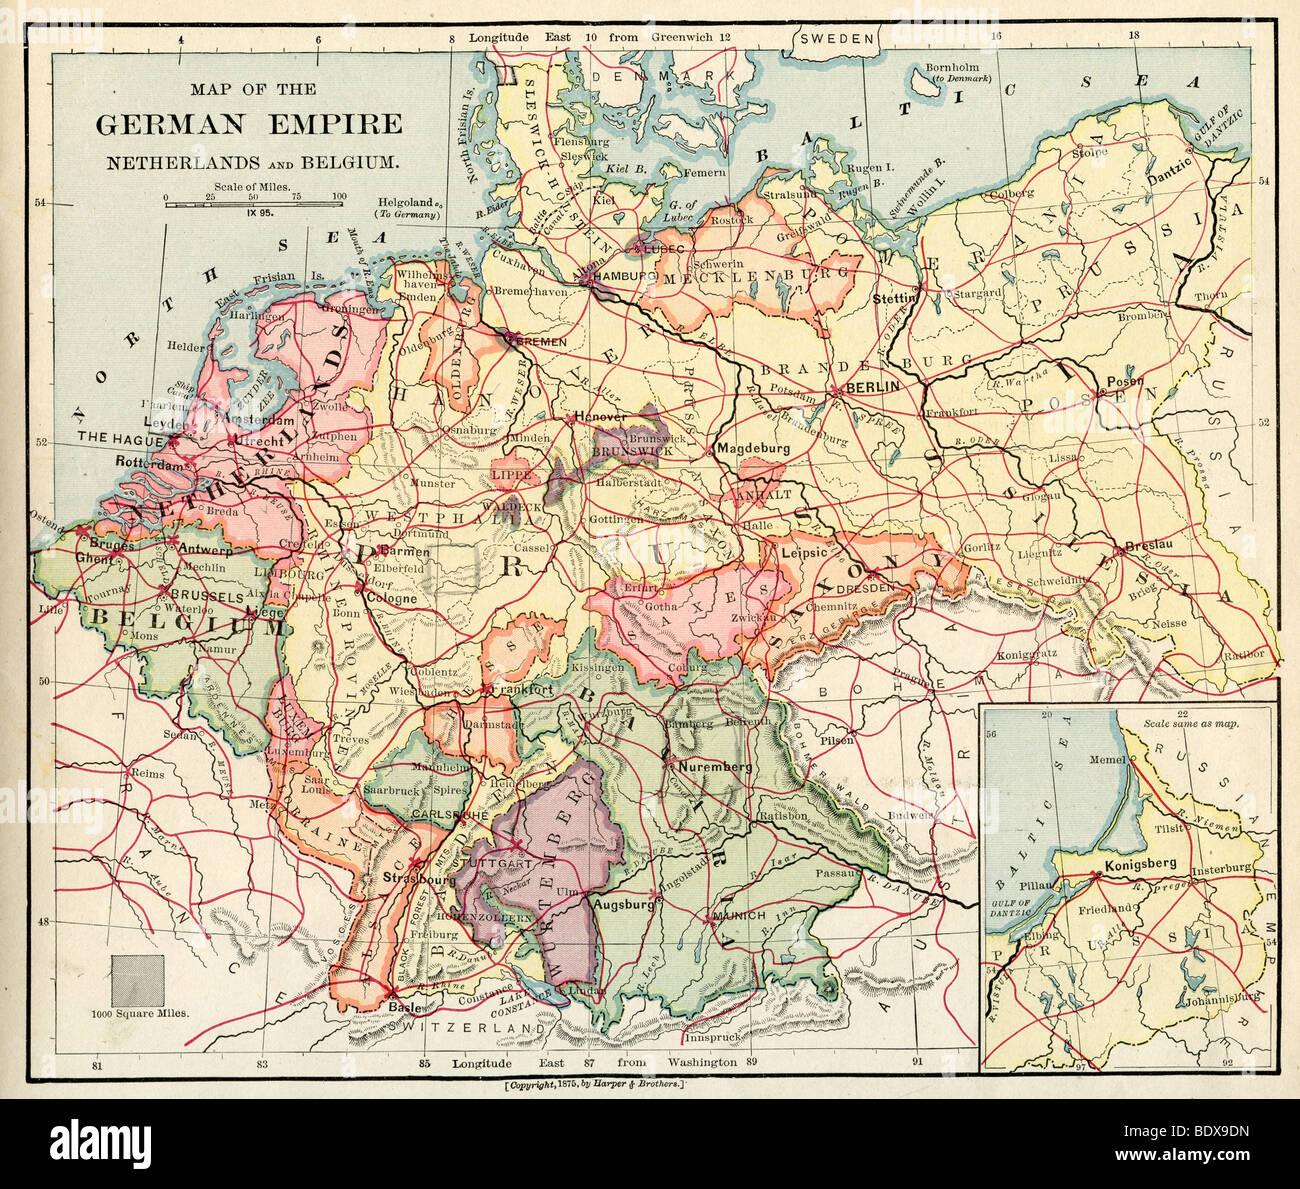 Original Old Map Of Germany From 1875 Geography Textbook Stock Photo